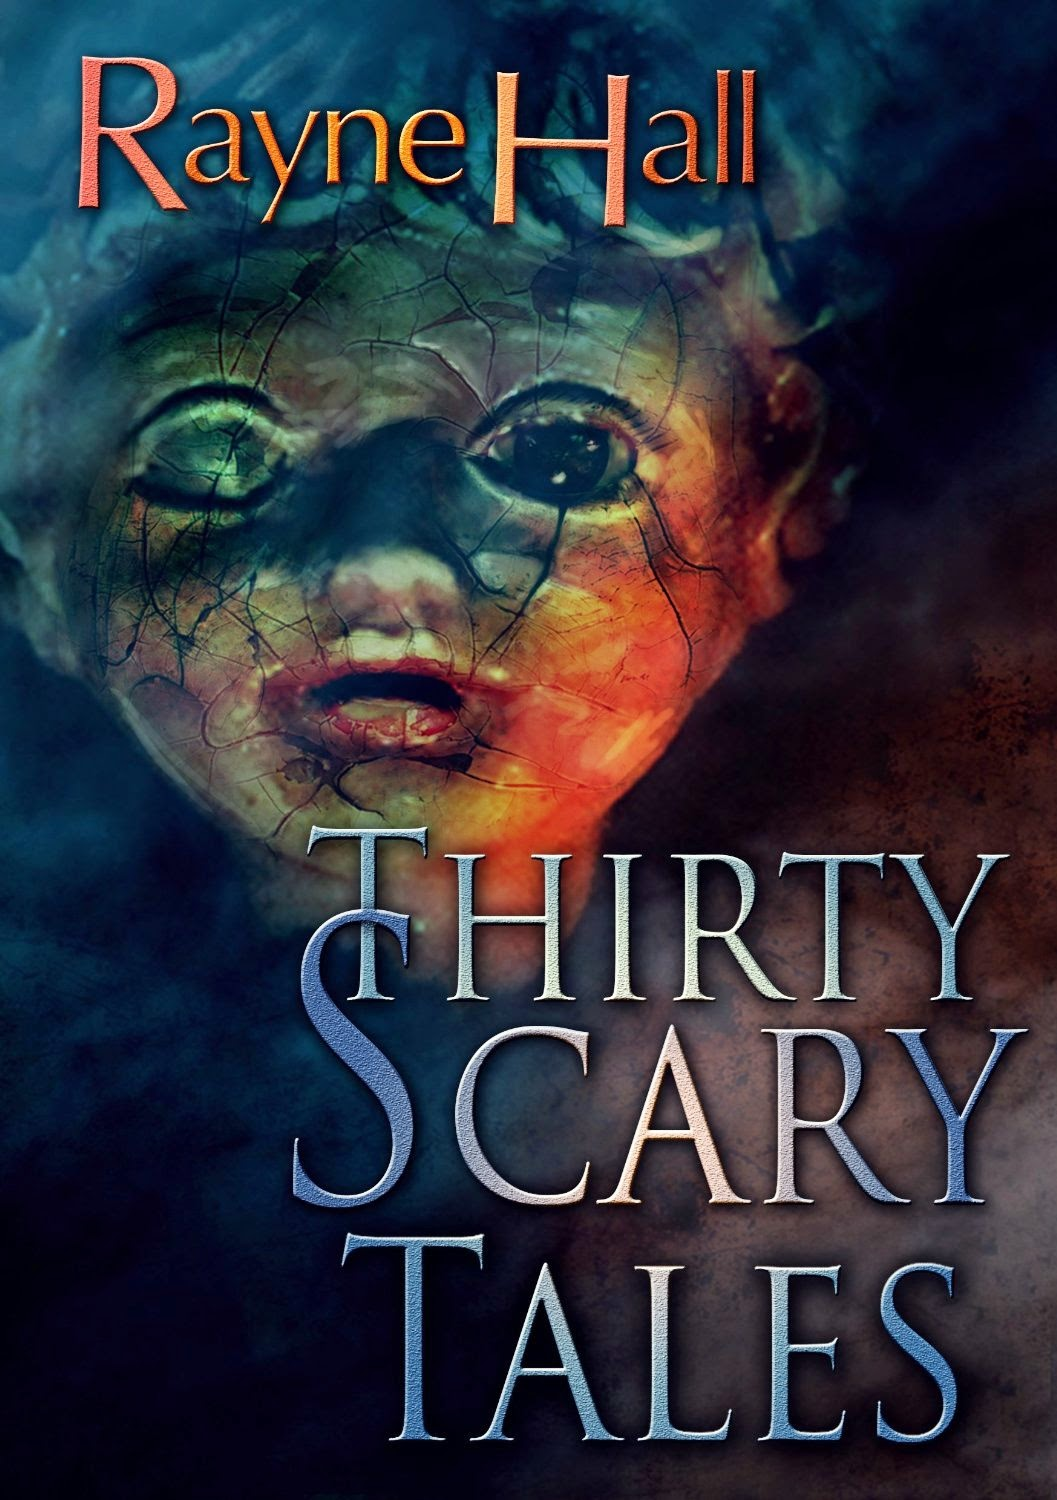 Thirty Scary Tales Book Review